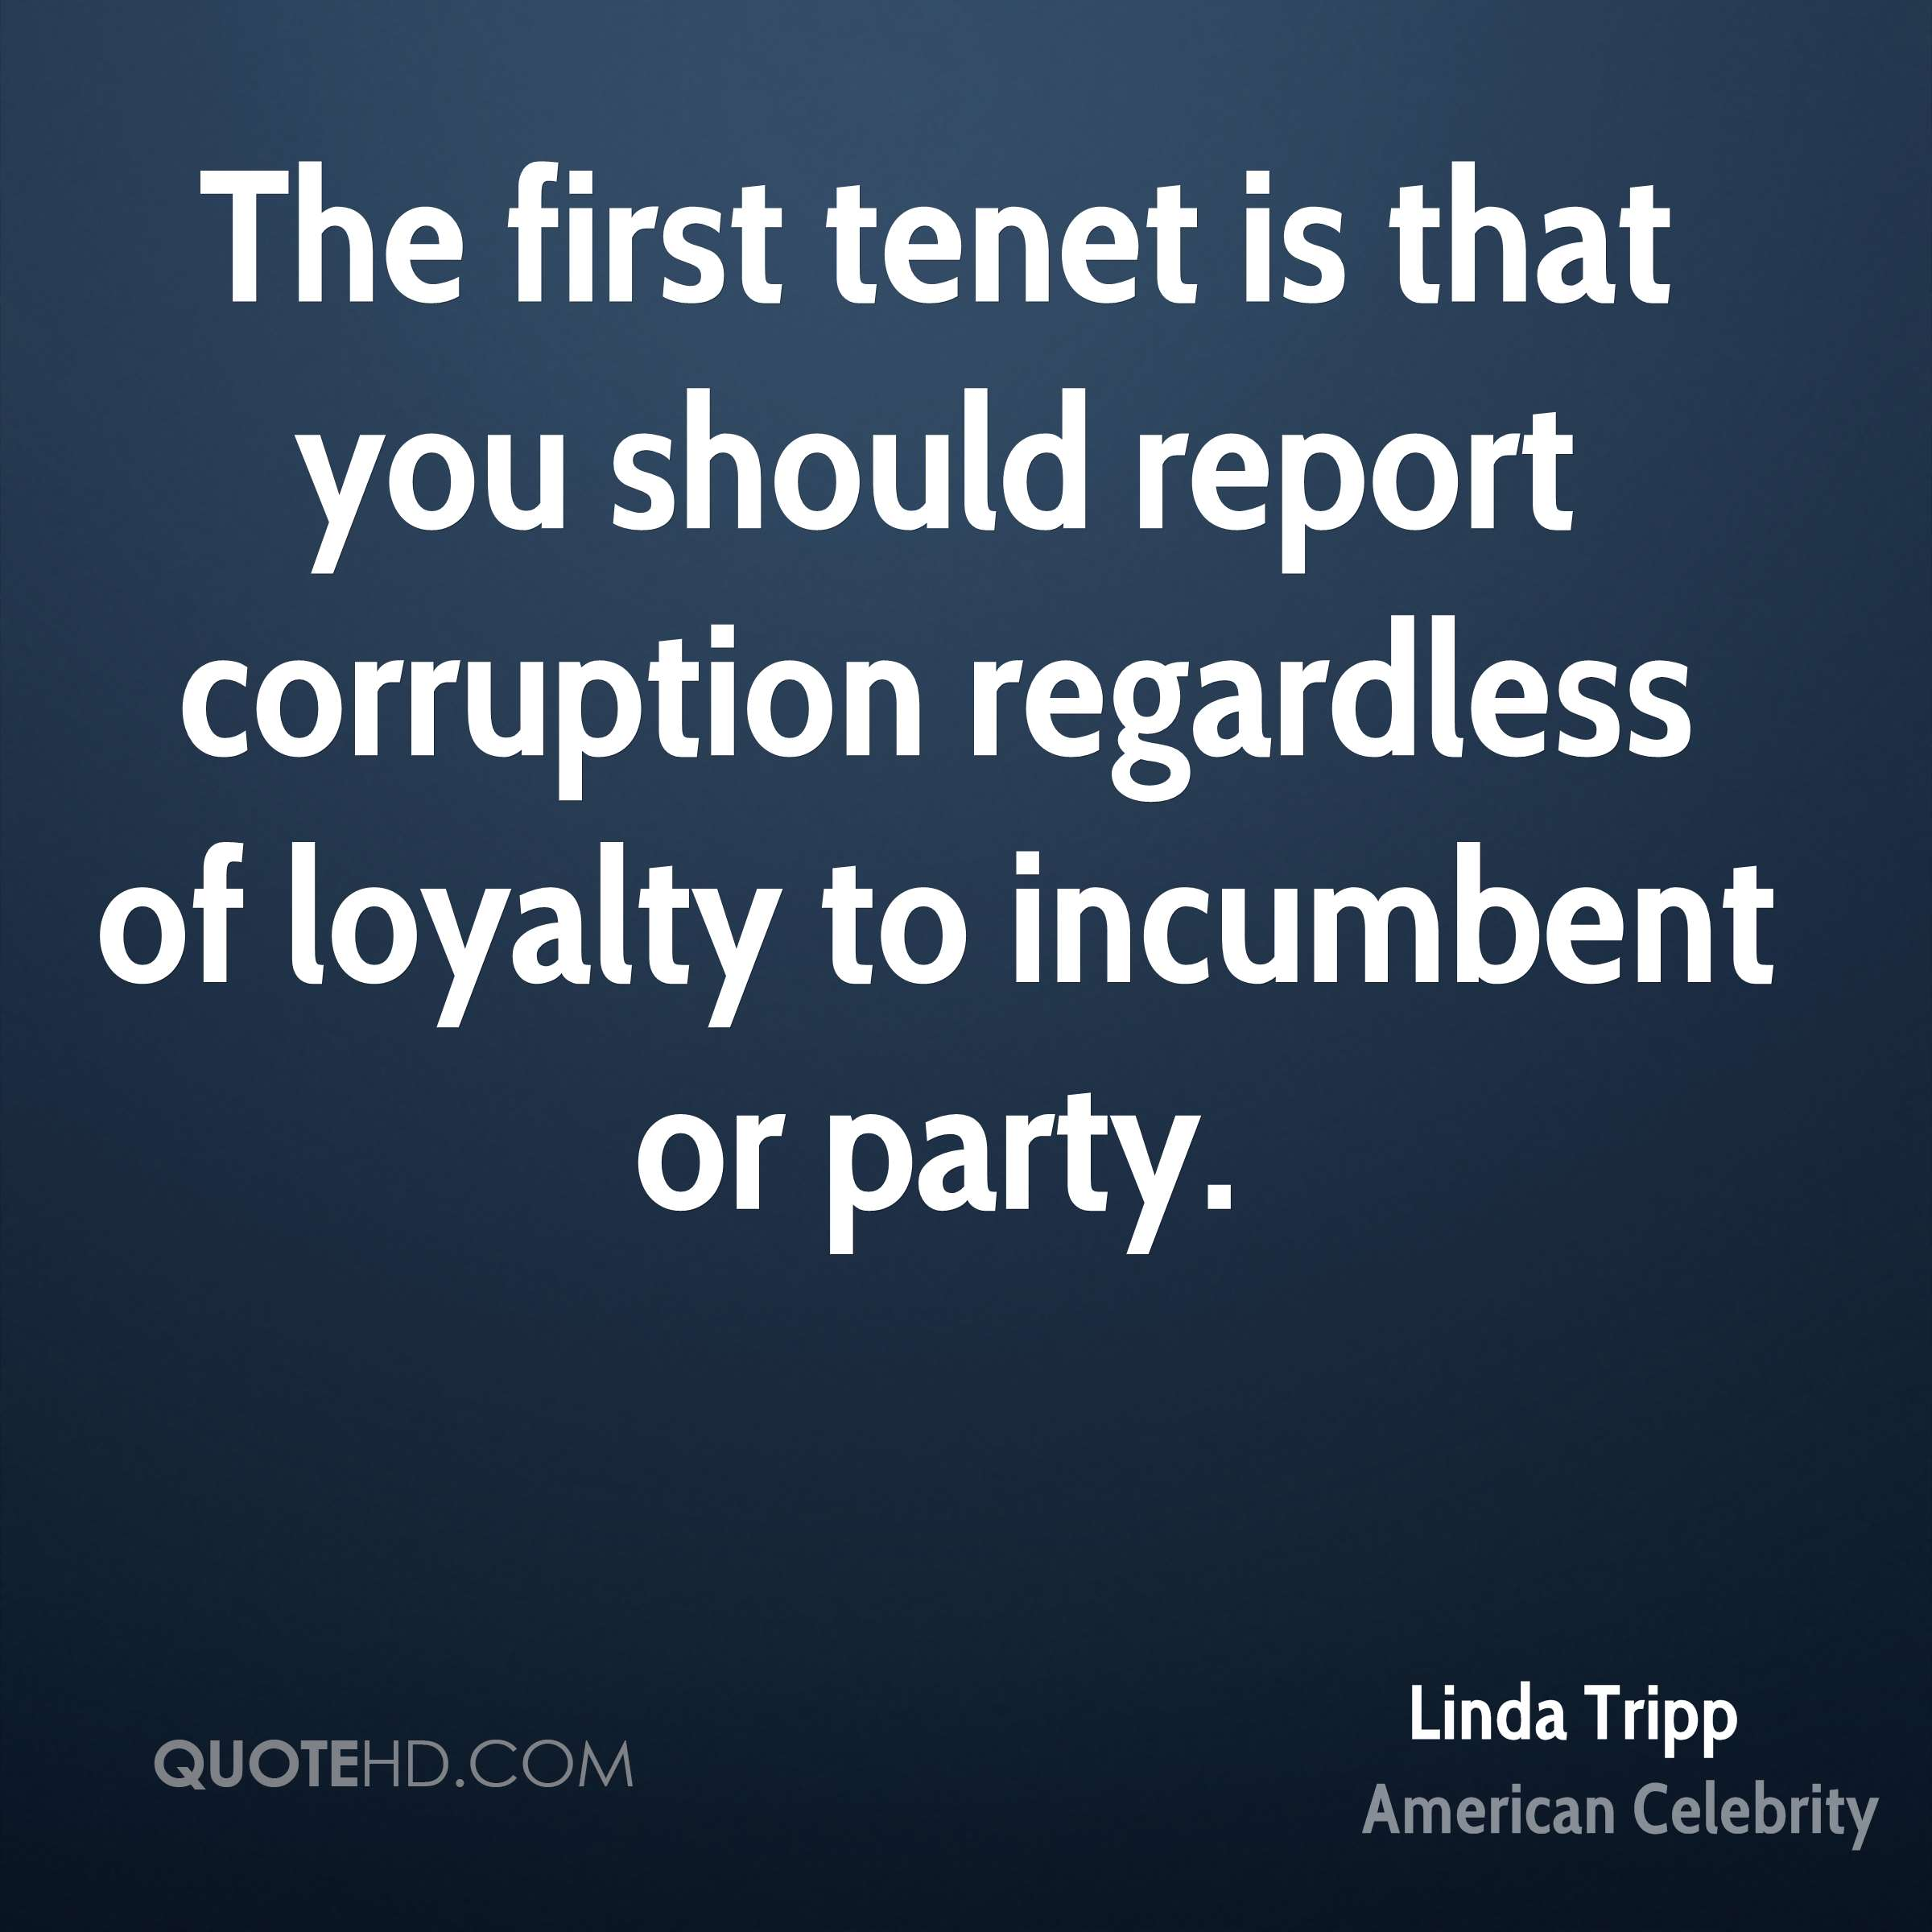 The first tenet is that you should report corruption regardless of loyalty to incumbent or party.